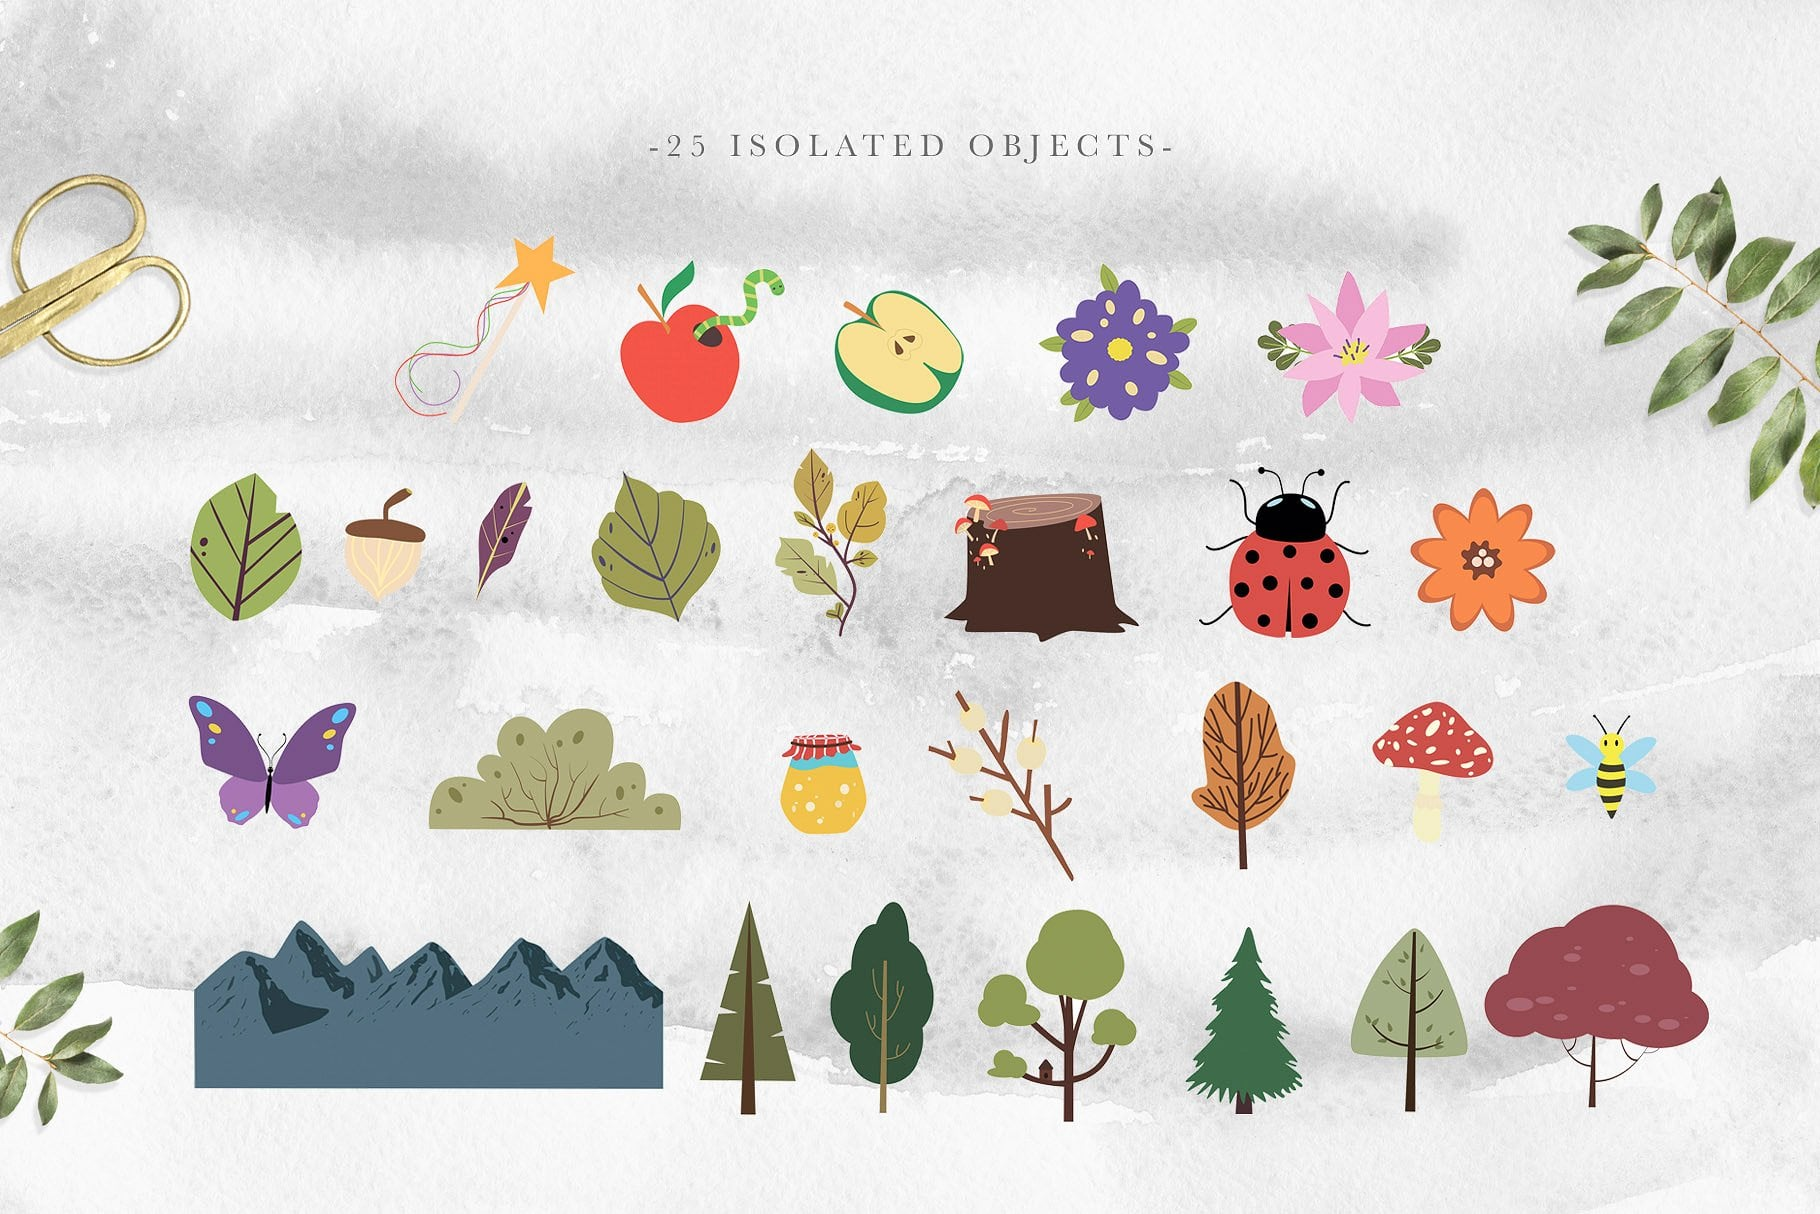 This collection also includes individual elements with mountains, trees and fruits.